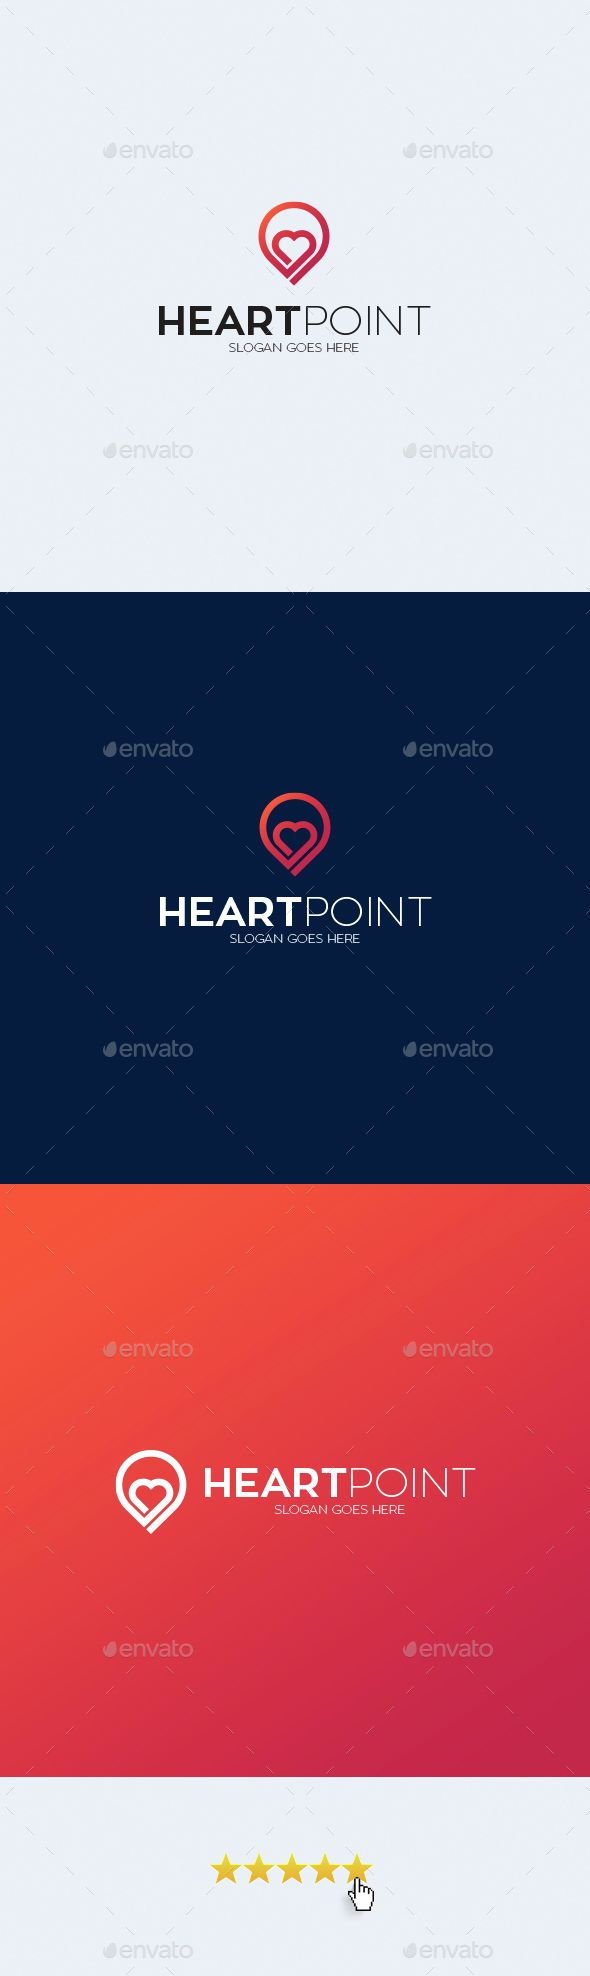 Heart Point Logo Template — Vector EPS #web #heart • Available here → https://graphicriver.net/item/heart-point-logo-template/14805473?ref=pxcr